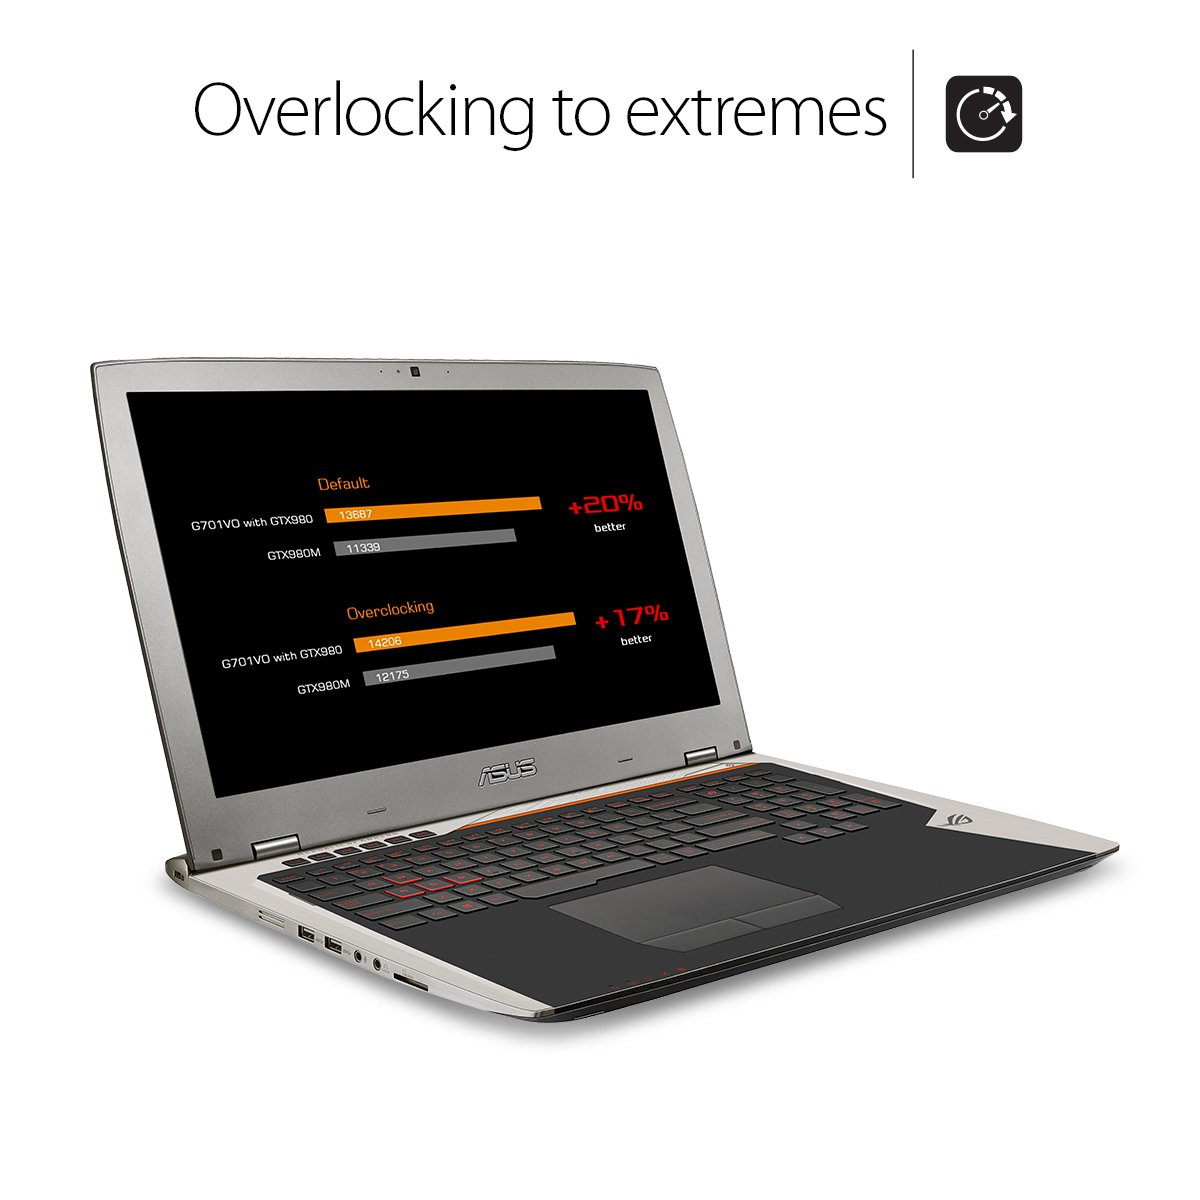 ASUS ROG G701VO DRIVERS FOR MAC